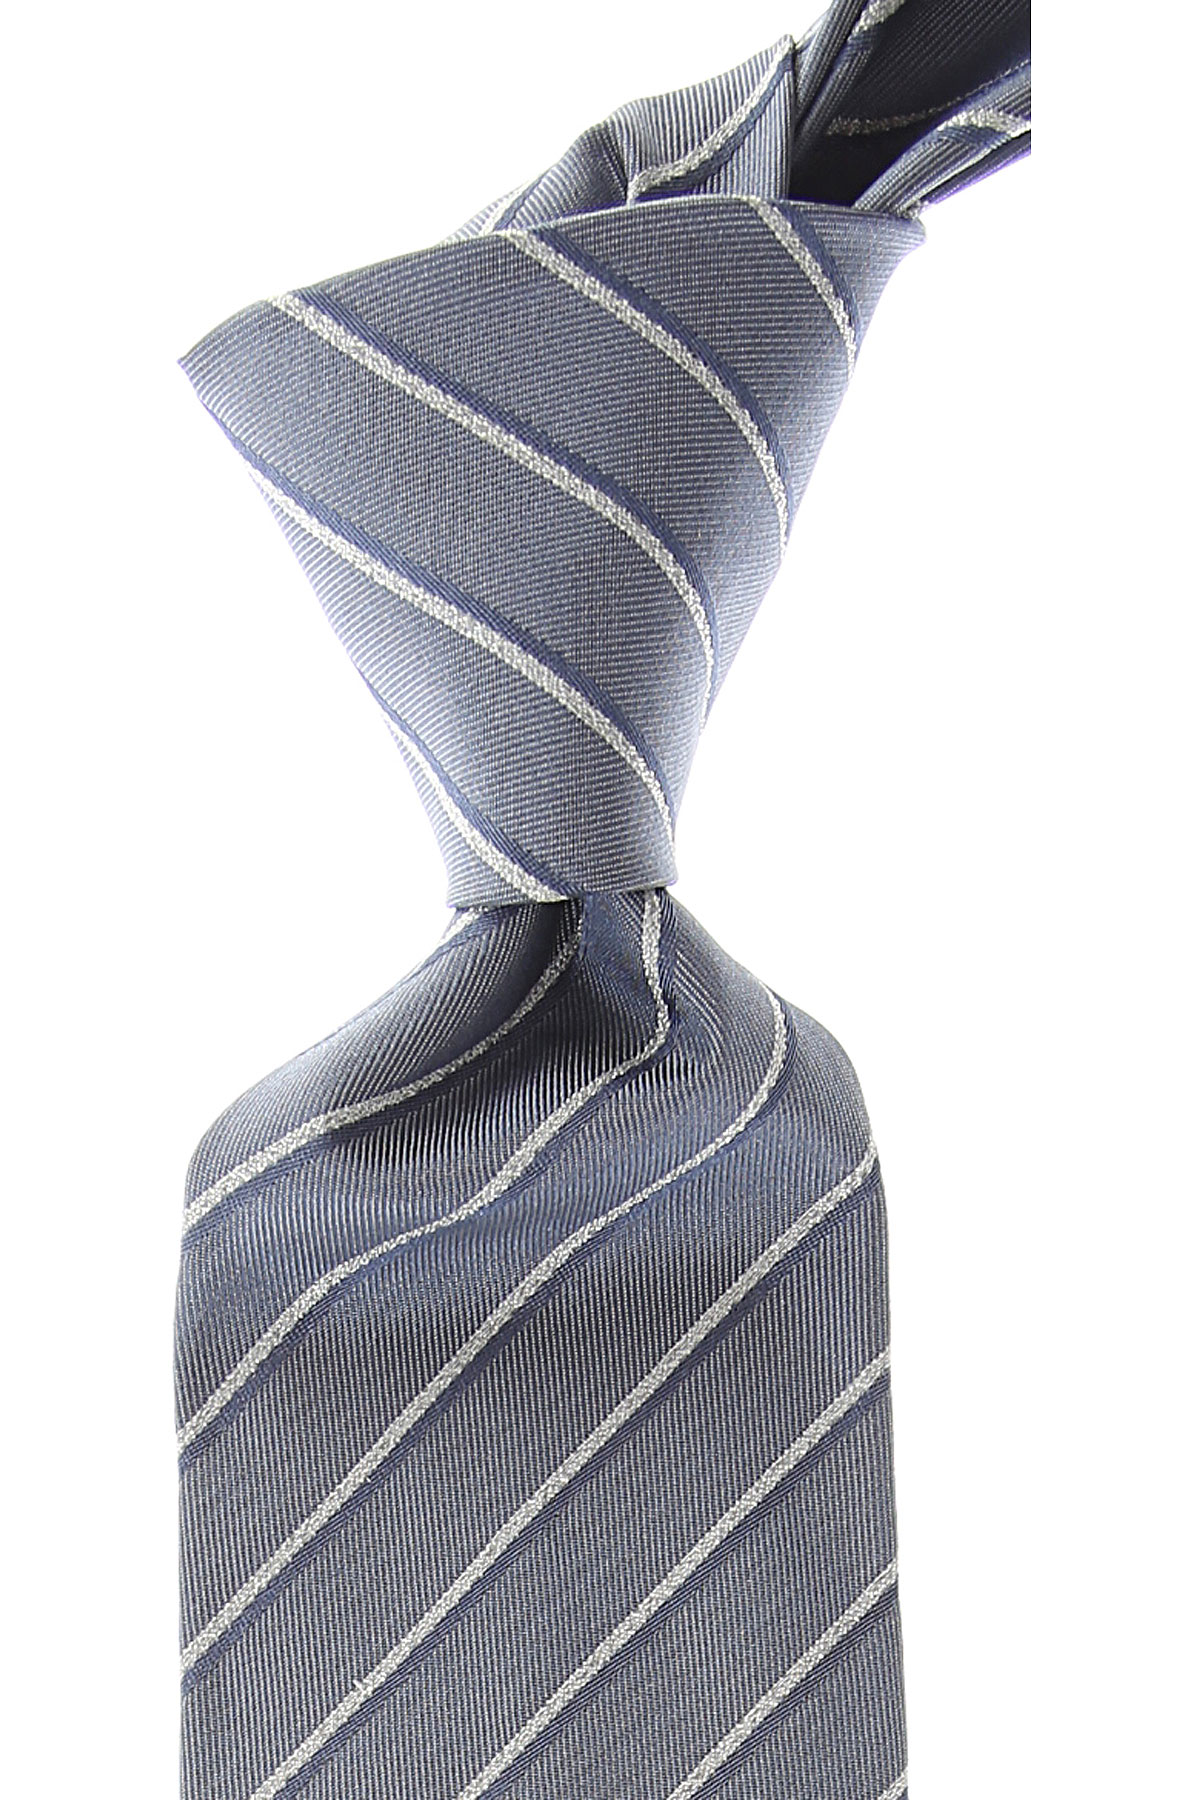 Giorgio_Armani_Ties_On_Sale_Light_Steel_Blue_Silk10_2019